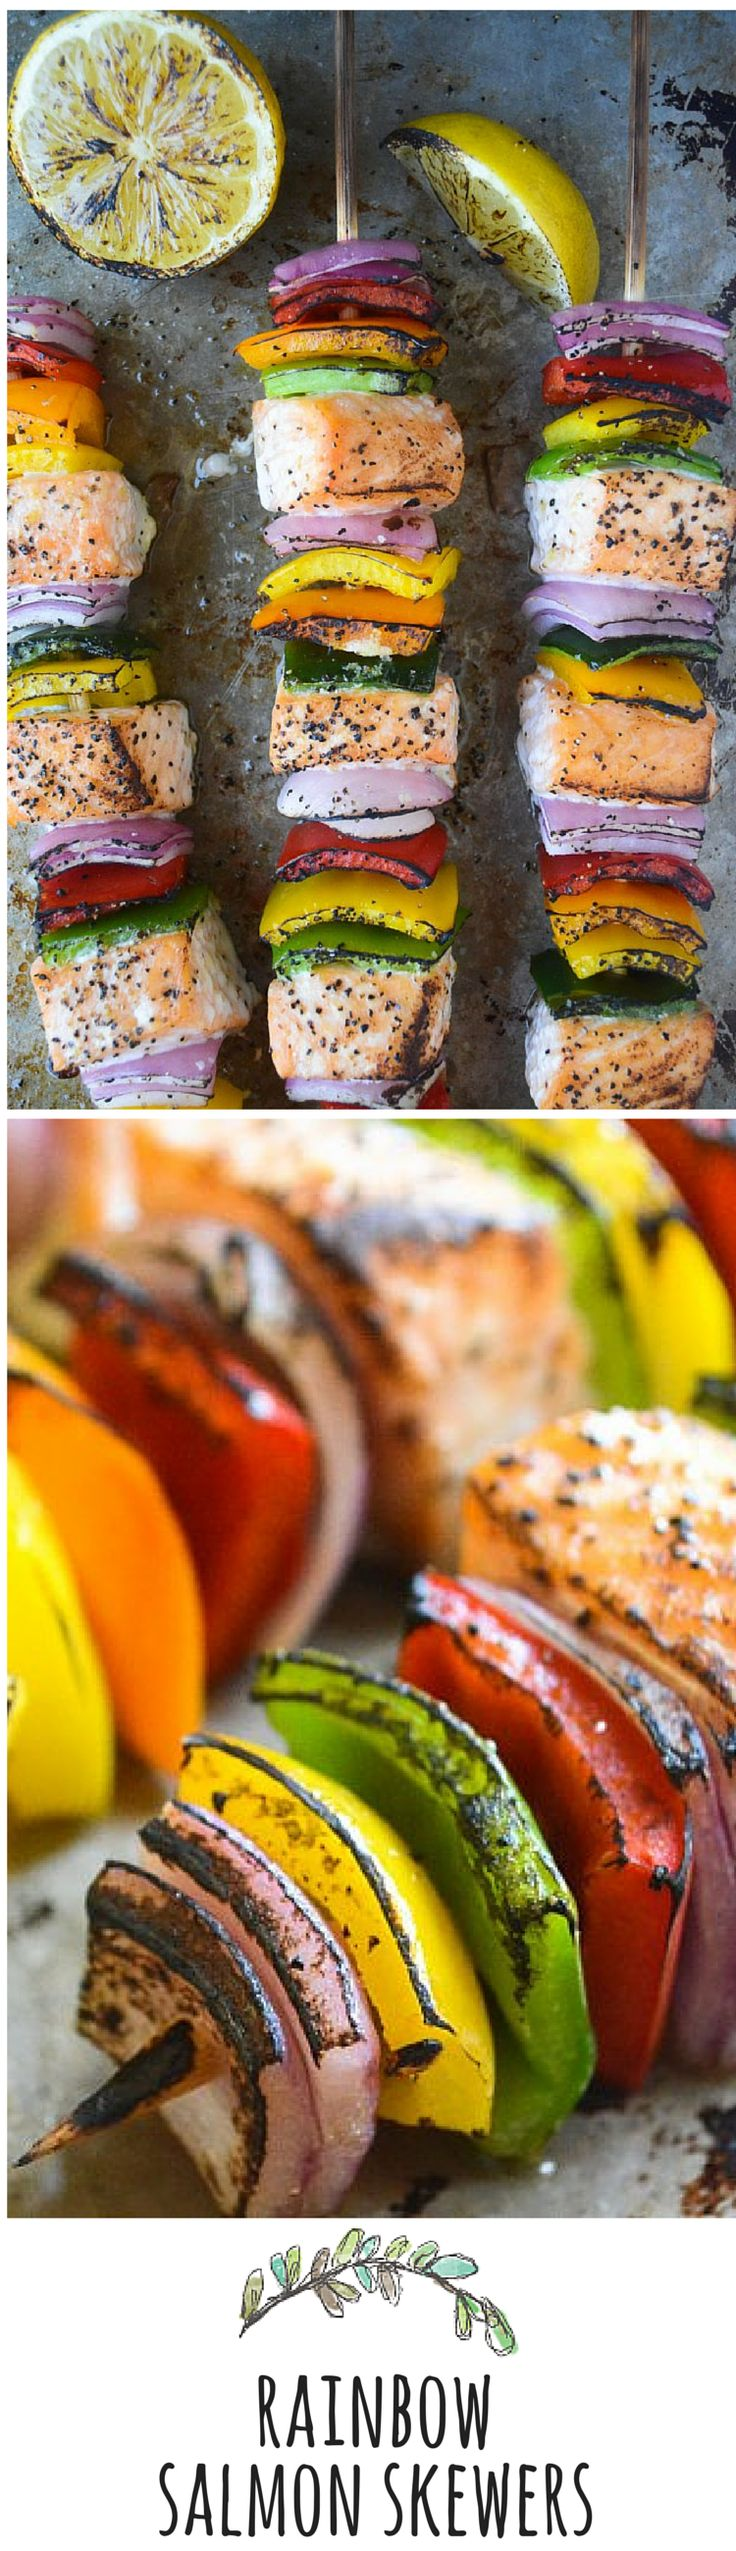 Make room on the grill for these colorful and healthy skewers!